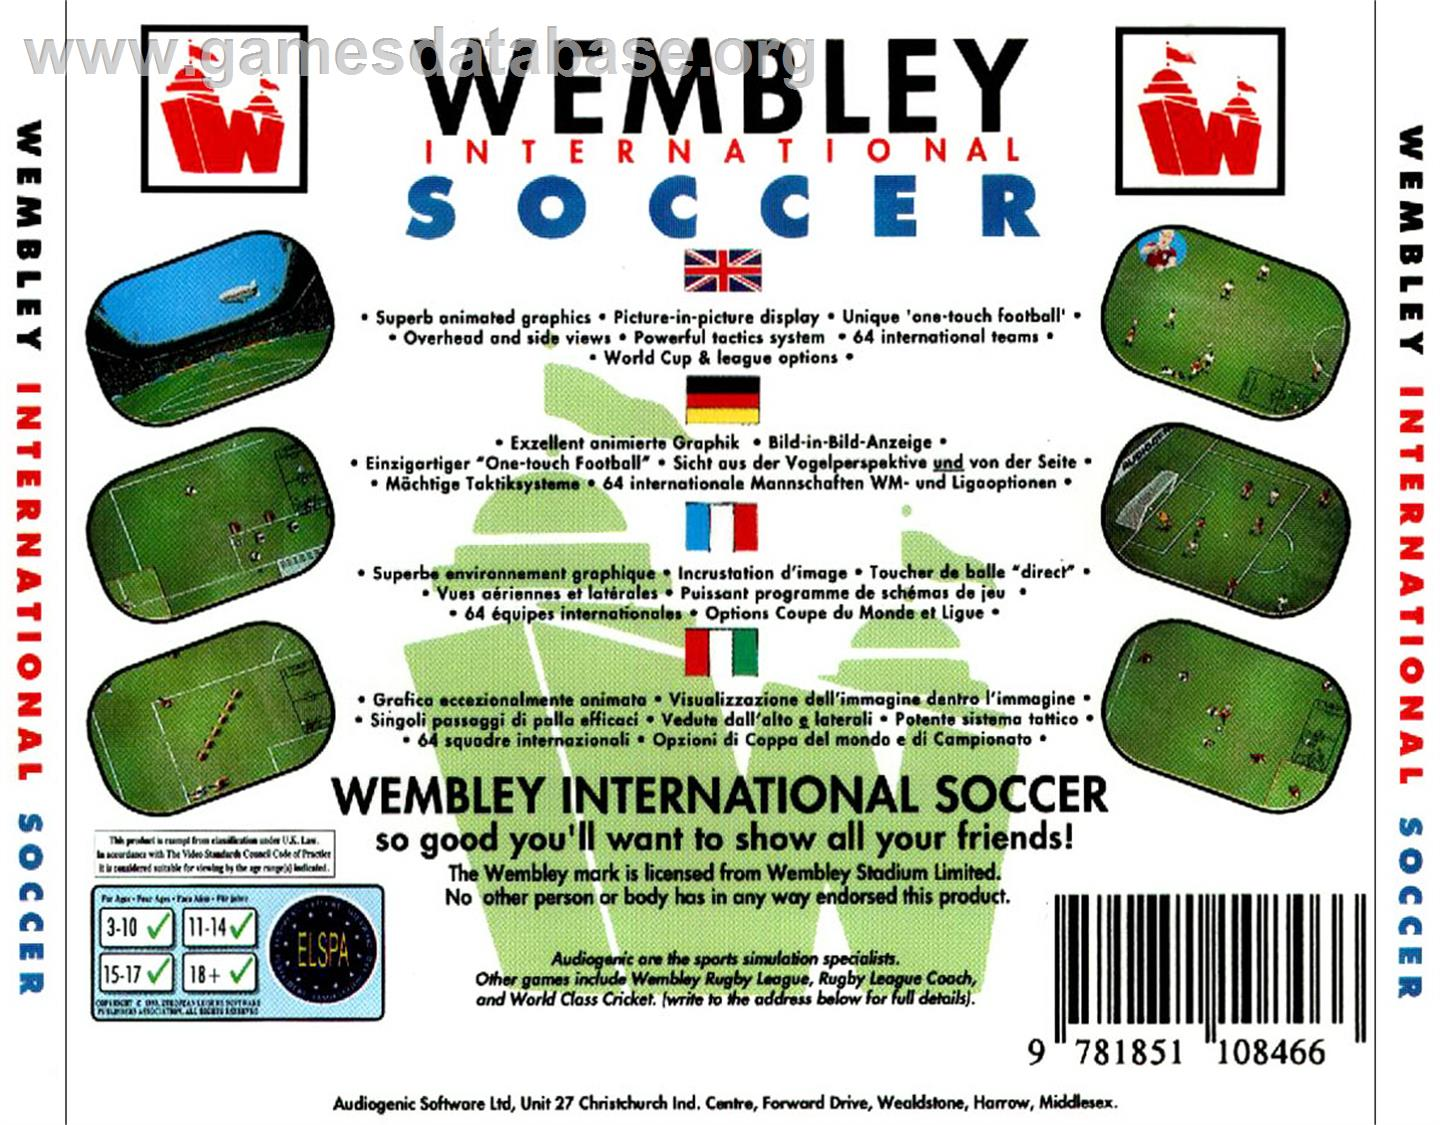 Wembley International Soccer - Commodore Amiga CD32 - Artwork - Box Back